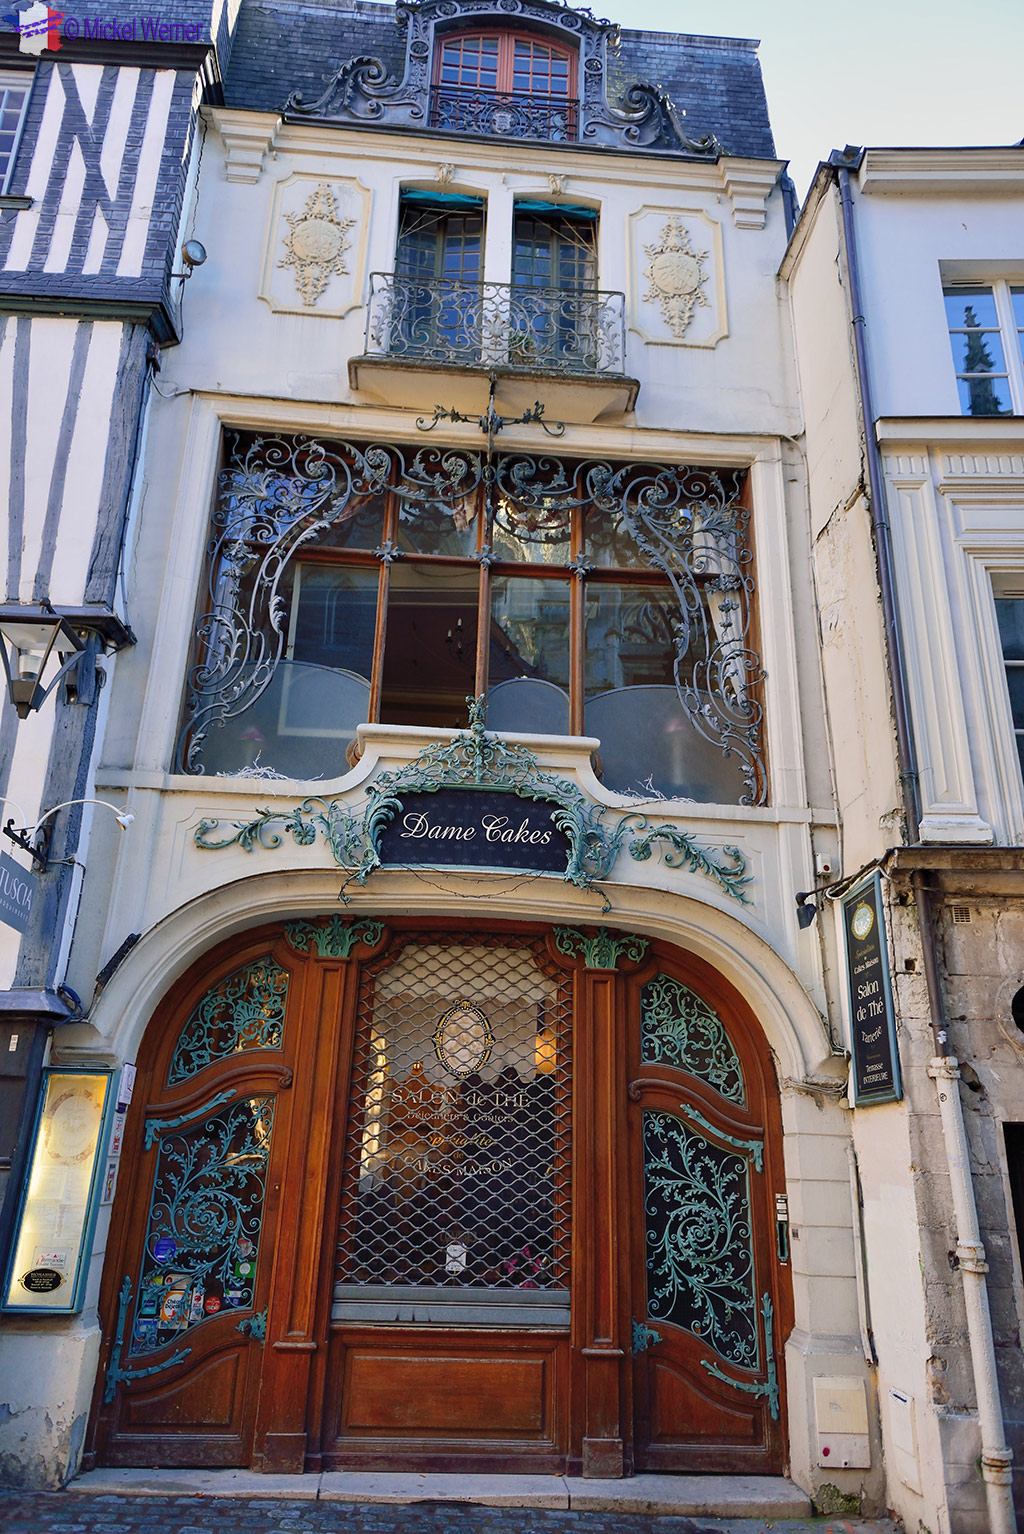 I Want To Buy Used Com >> Rouen – Restaurants – Dame Cakes – Travel Information and ...